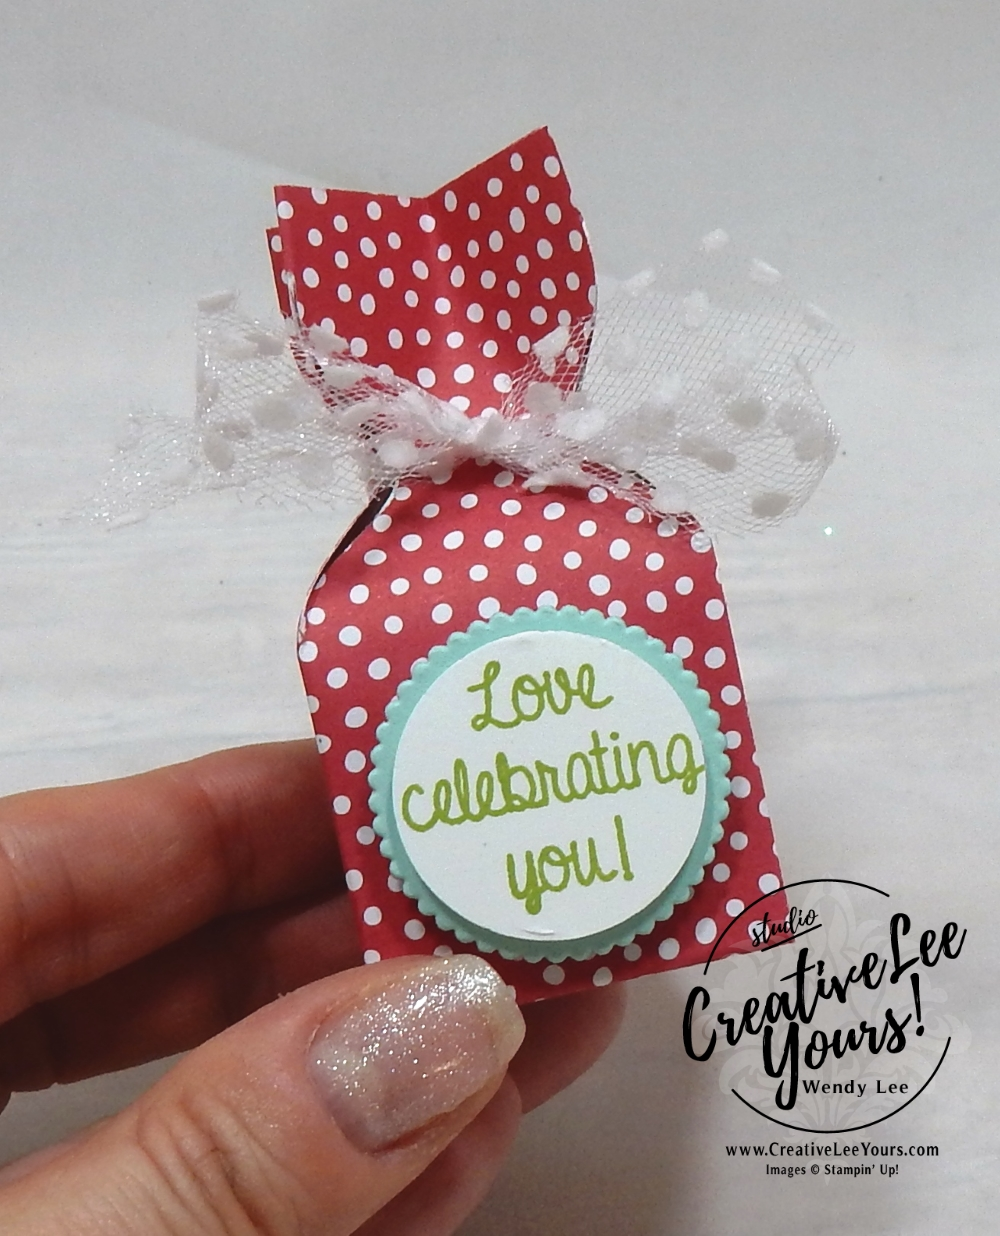 Stampin up 2018 2019 new catalog party with Wendy Lee, #creativeleeyours, creatively yours, creative-lee yours, open house, 3D candy treat,envelope punch board, handmade, stamping, SU